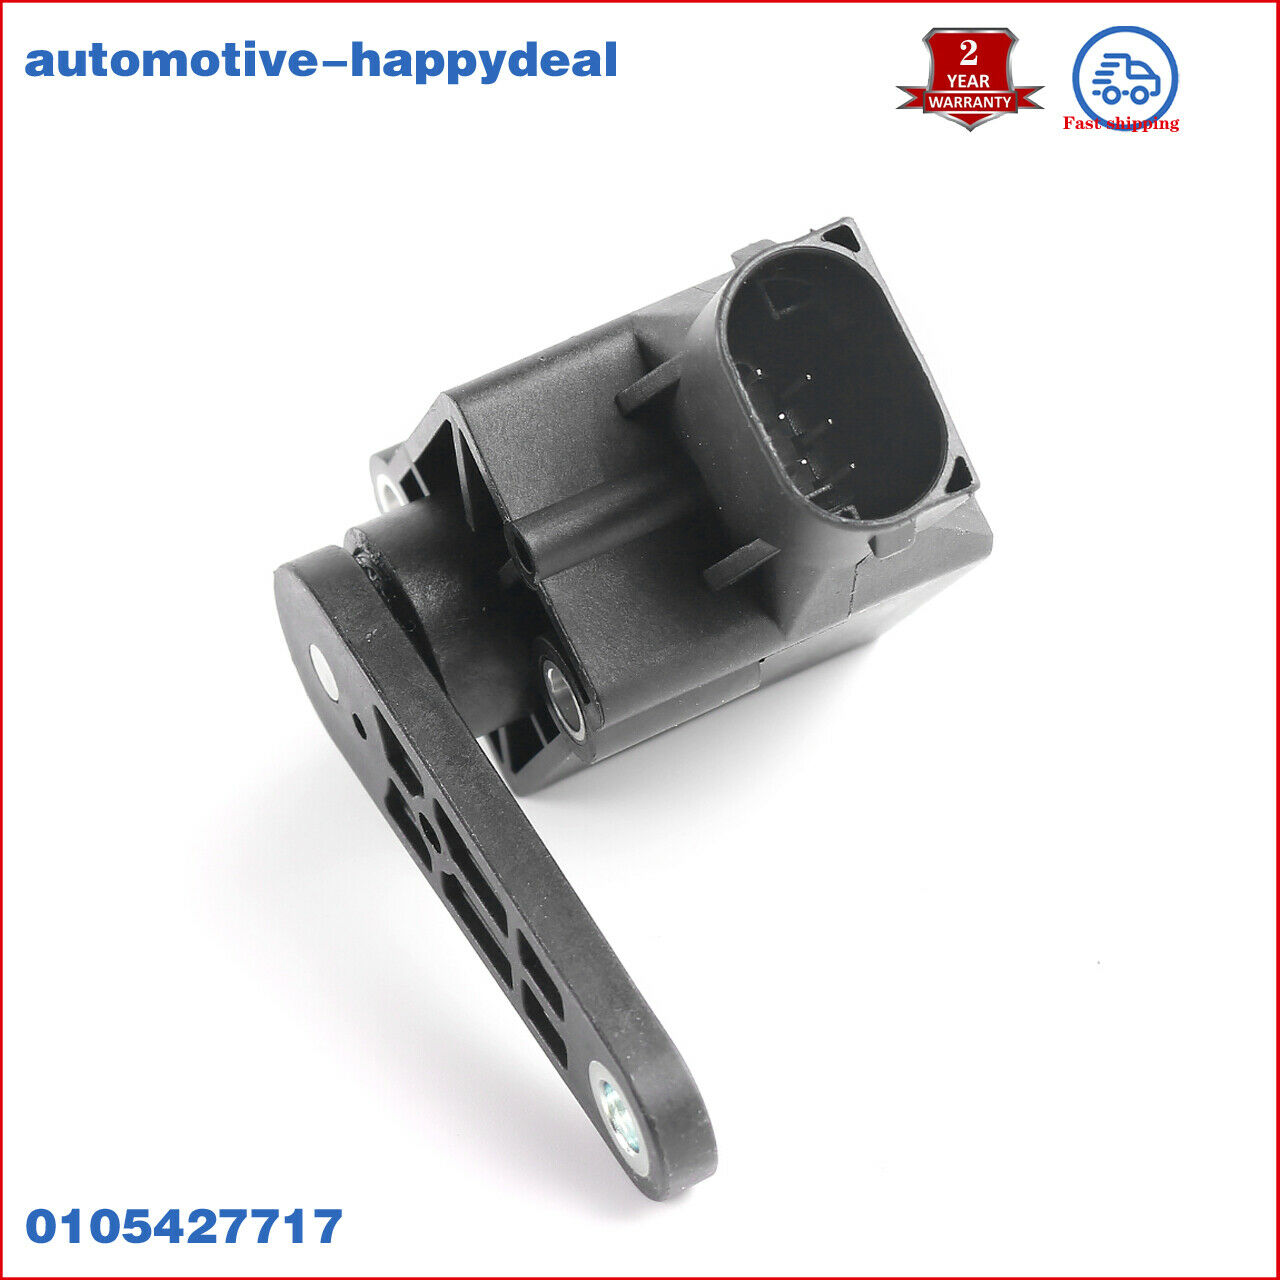 Suspension Level Sensor For Mercedes W220 W211 C230 C240 R320 R350 ML350 S550